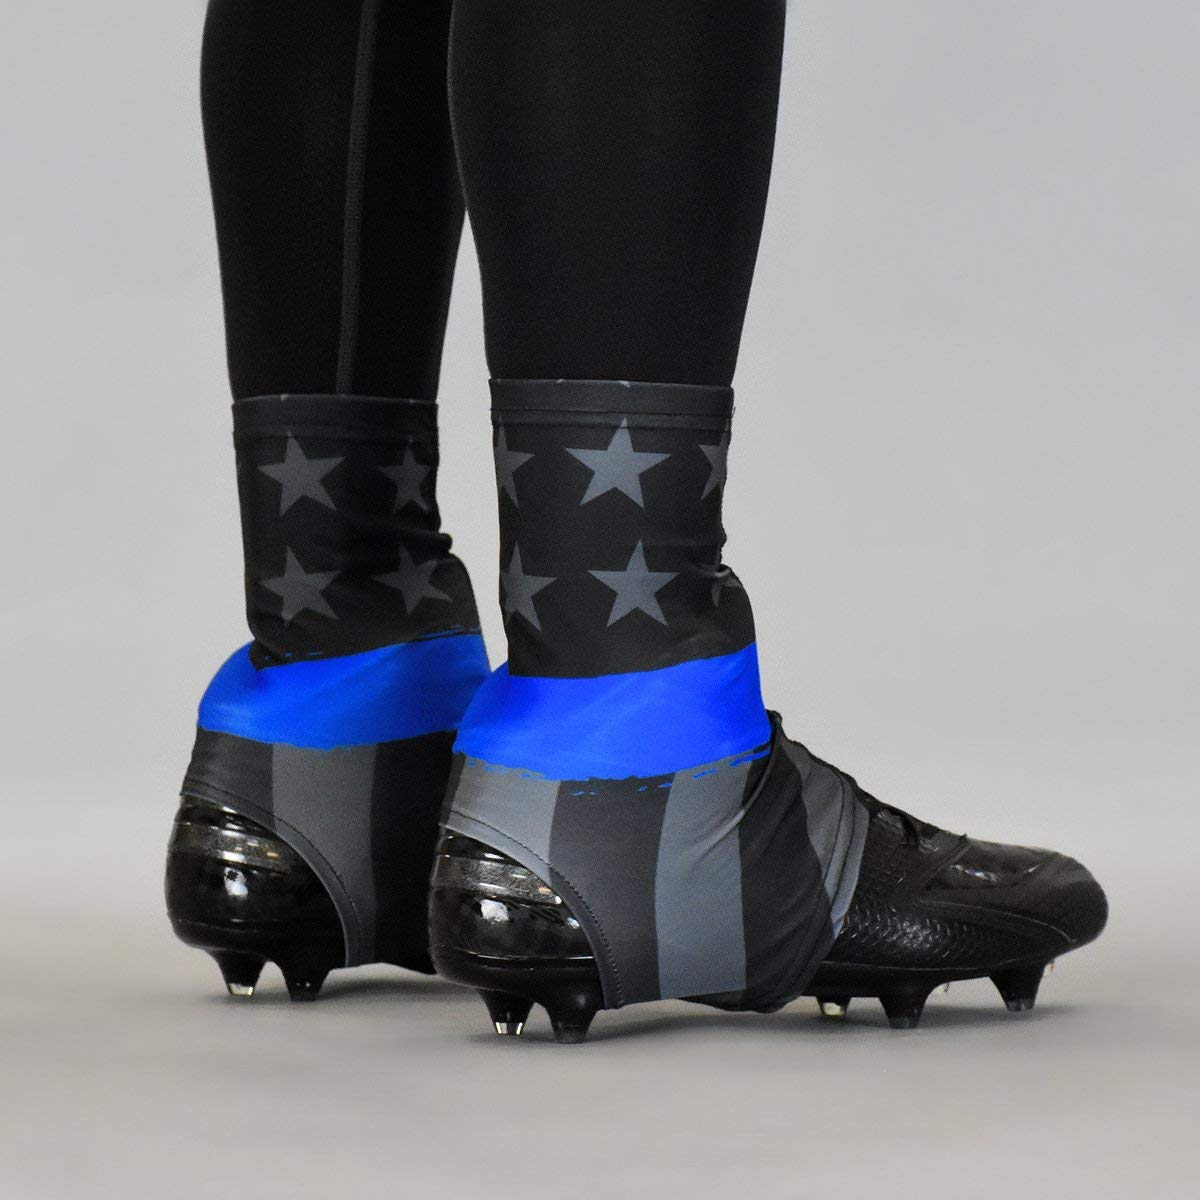 cleat spats